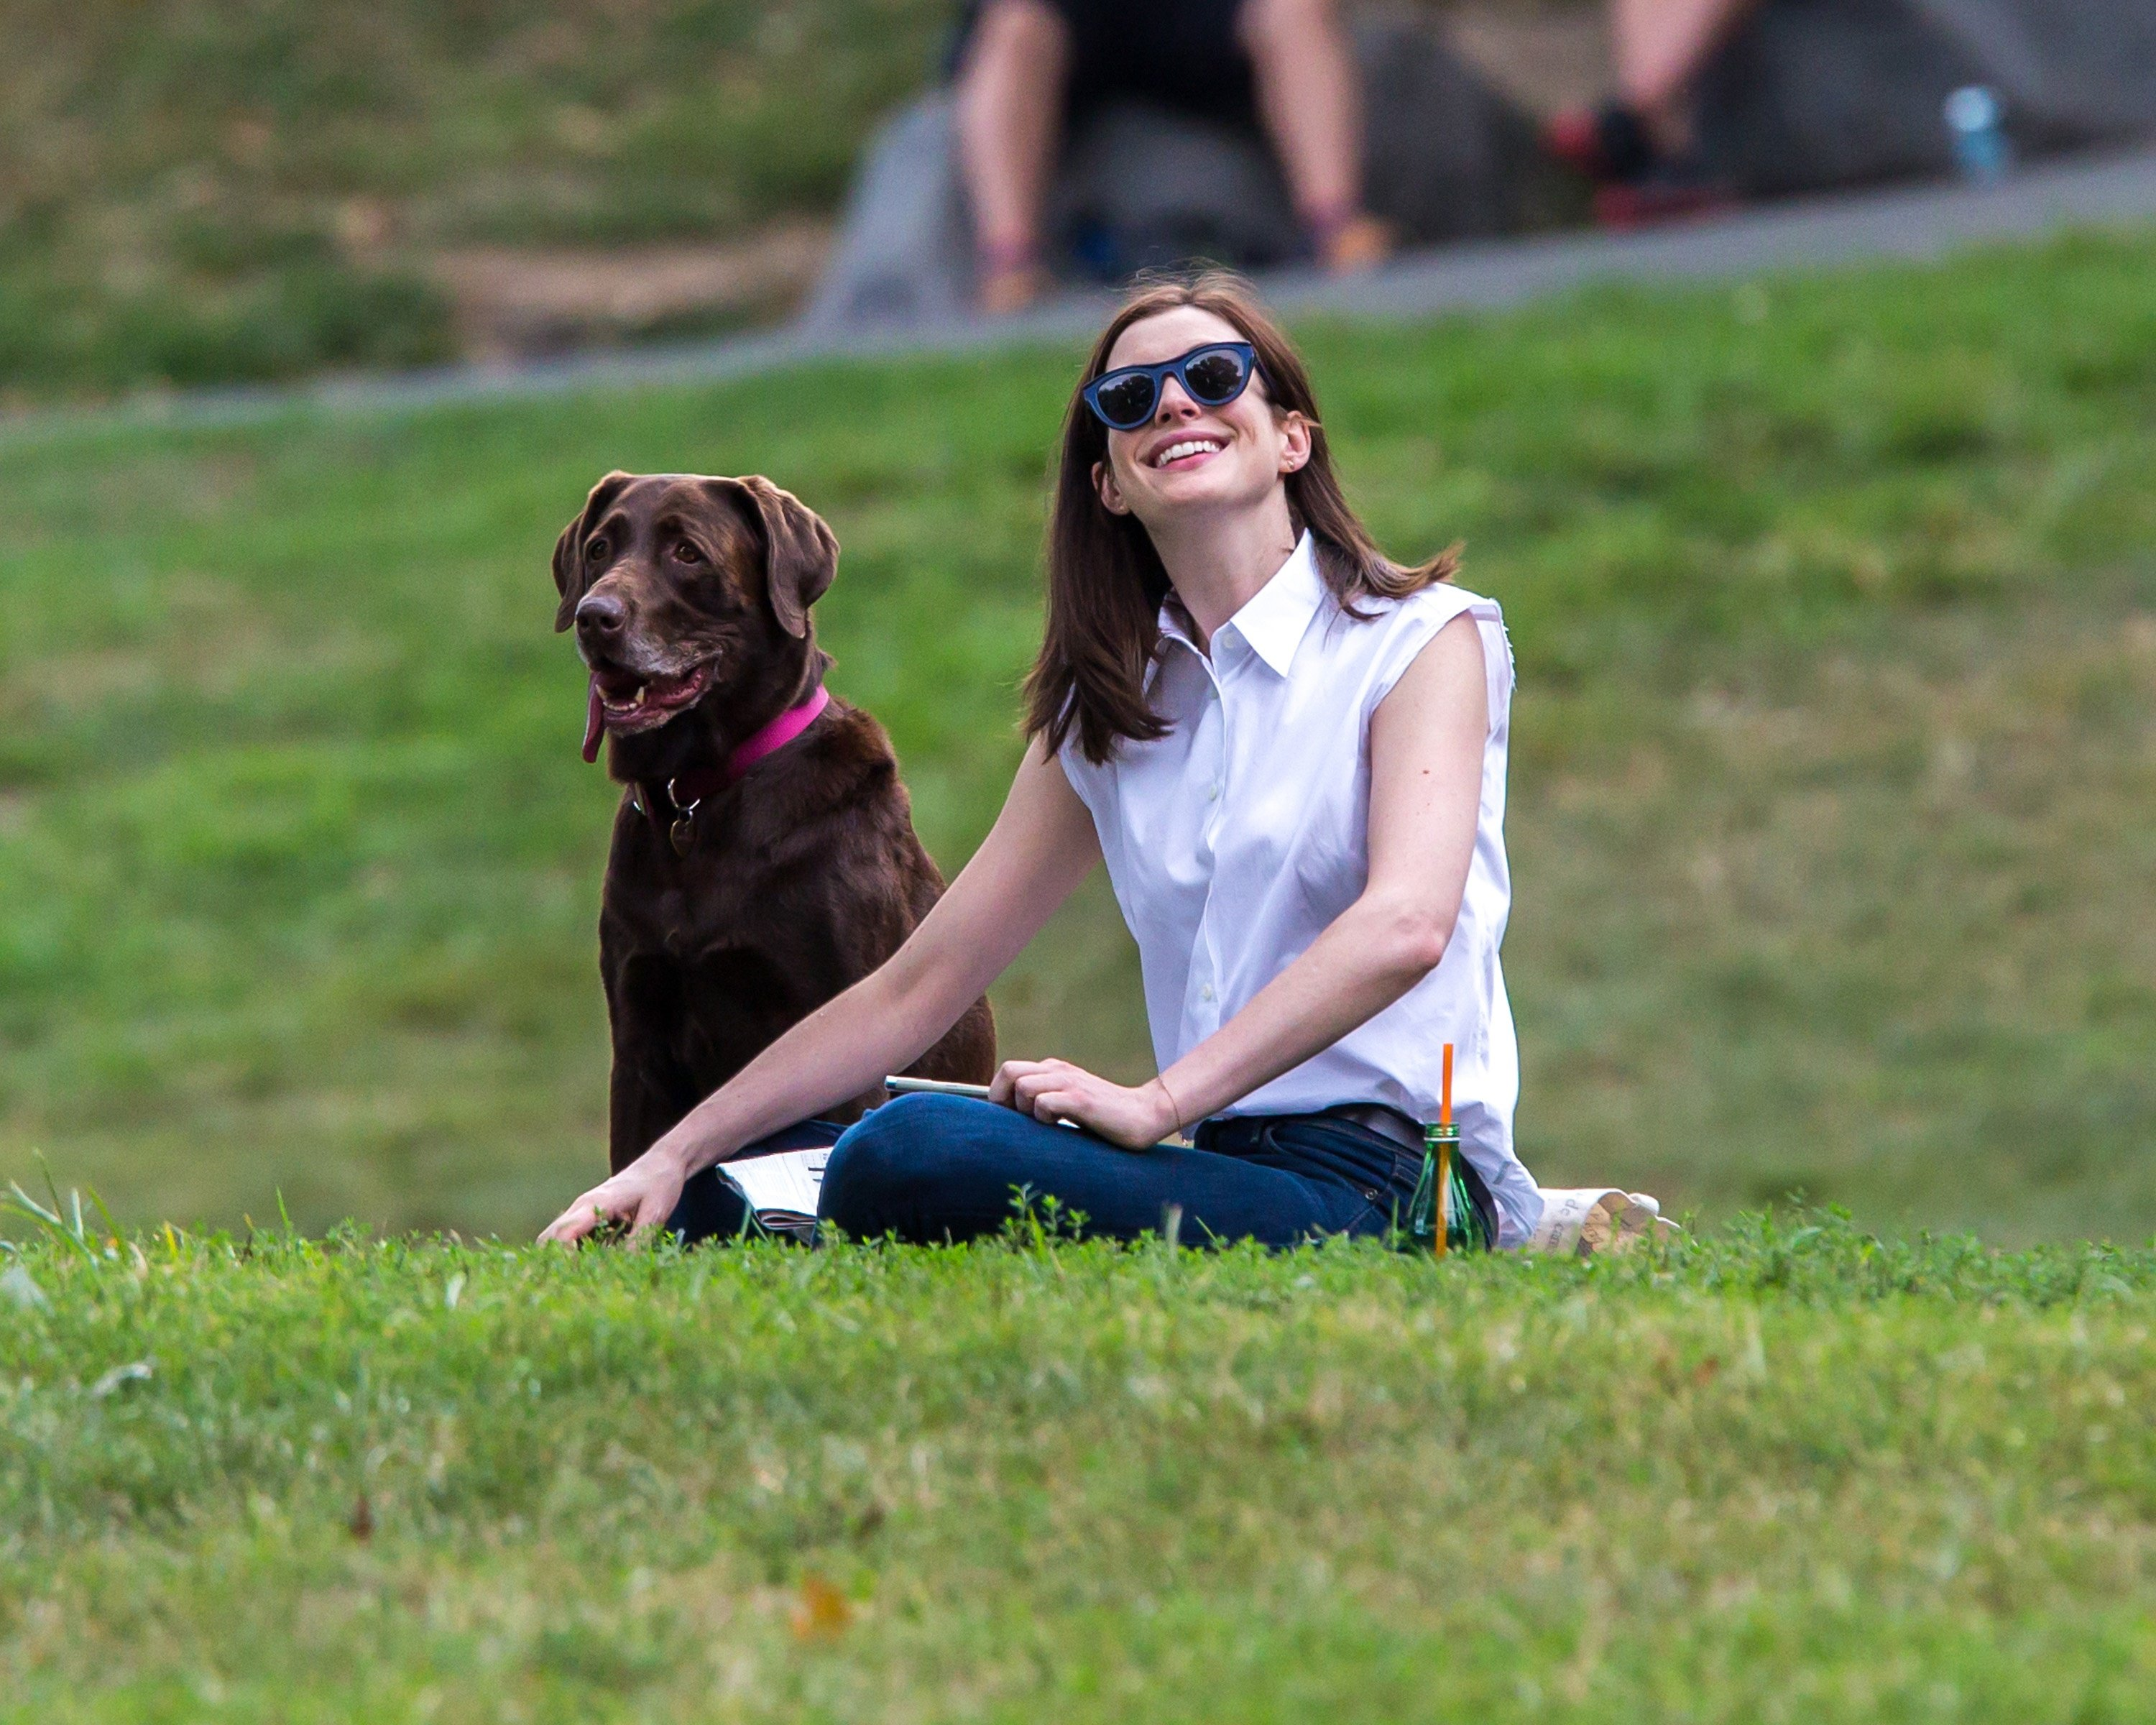 Anne Hathaway And Her Pup, Esmeralda